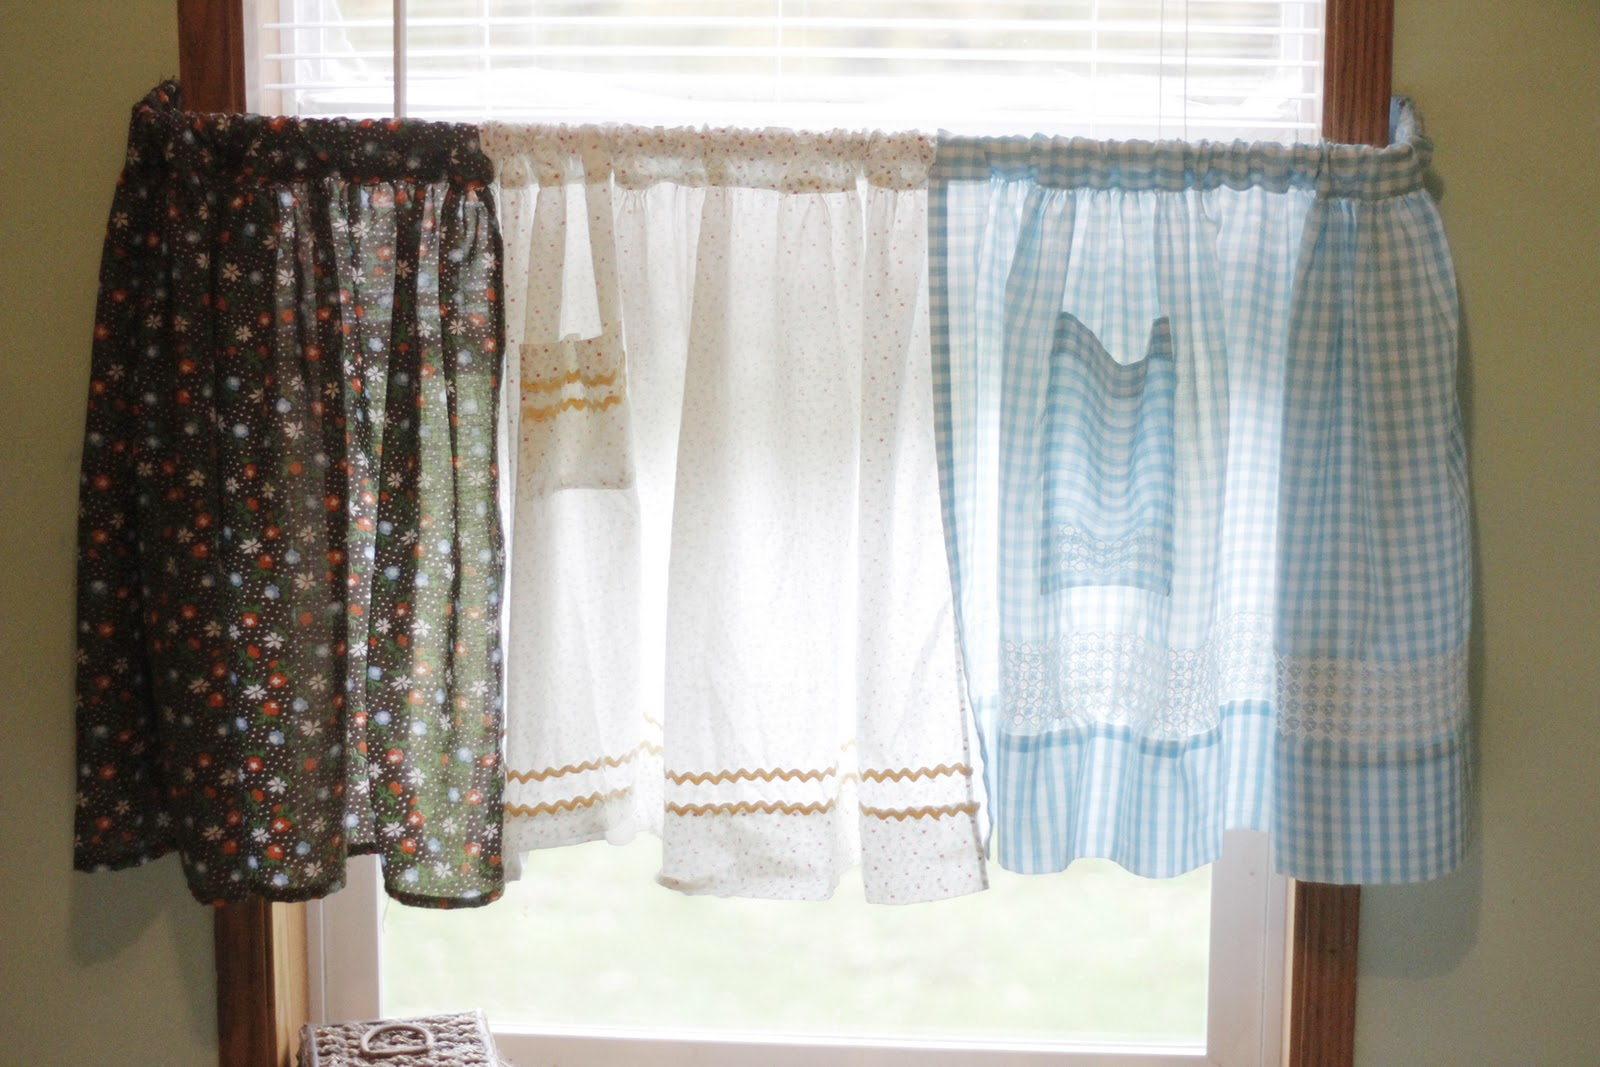 Mini curtain rods - My Curtains Are Made From Vintage Aprons This Is A Super Easy Project All You Have To Do Is Cut The Little Straps Off And Slide Them Onto A Curtain Rod